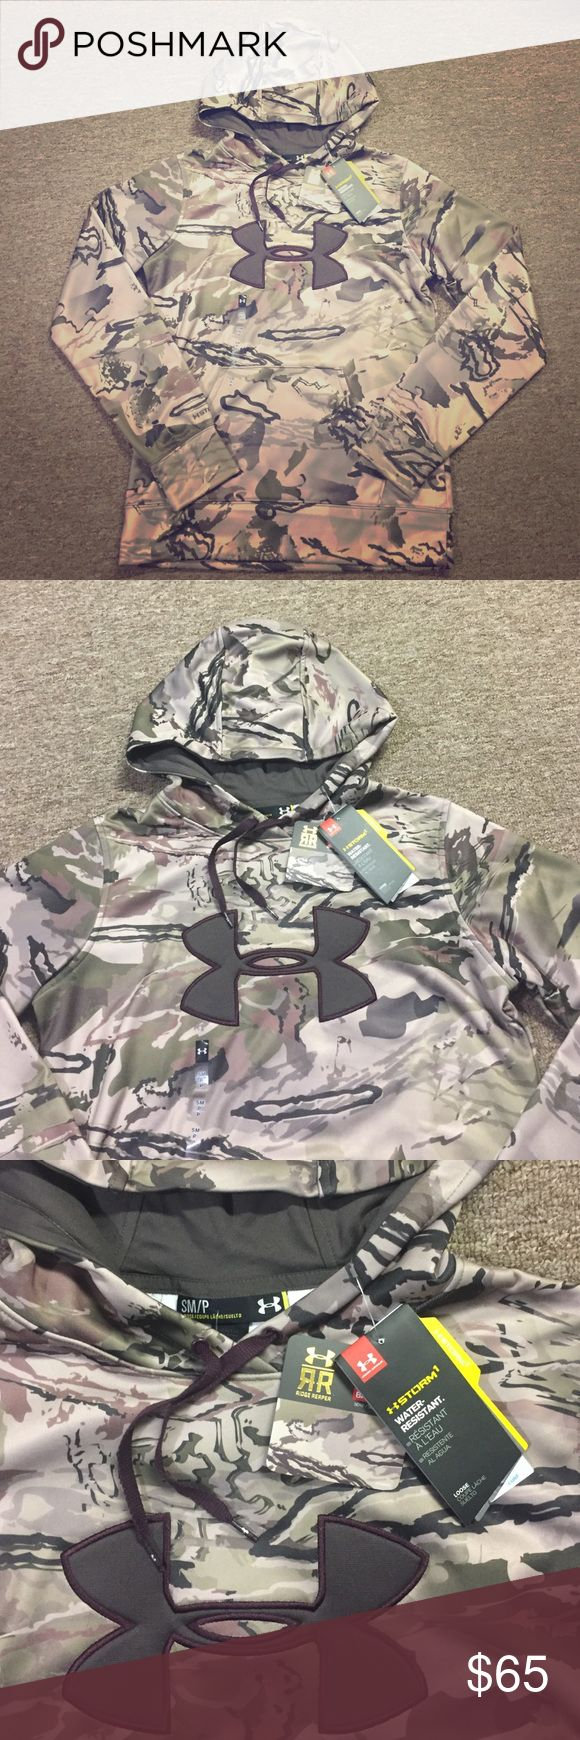 """Under Armour Camo Hoodie Ridge Reaper camouflage hoodie. Brown, tan and green. Part of the Under Armour storm """"barren"""" series, water resistant and made to keep you warm. Brand new, women's small. Under Armour Tops Sweatshirts & Hoodies"""